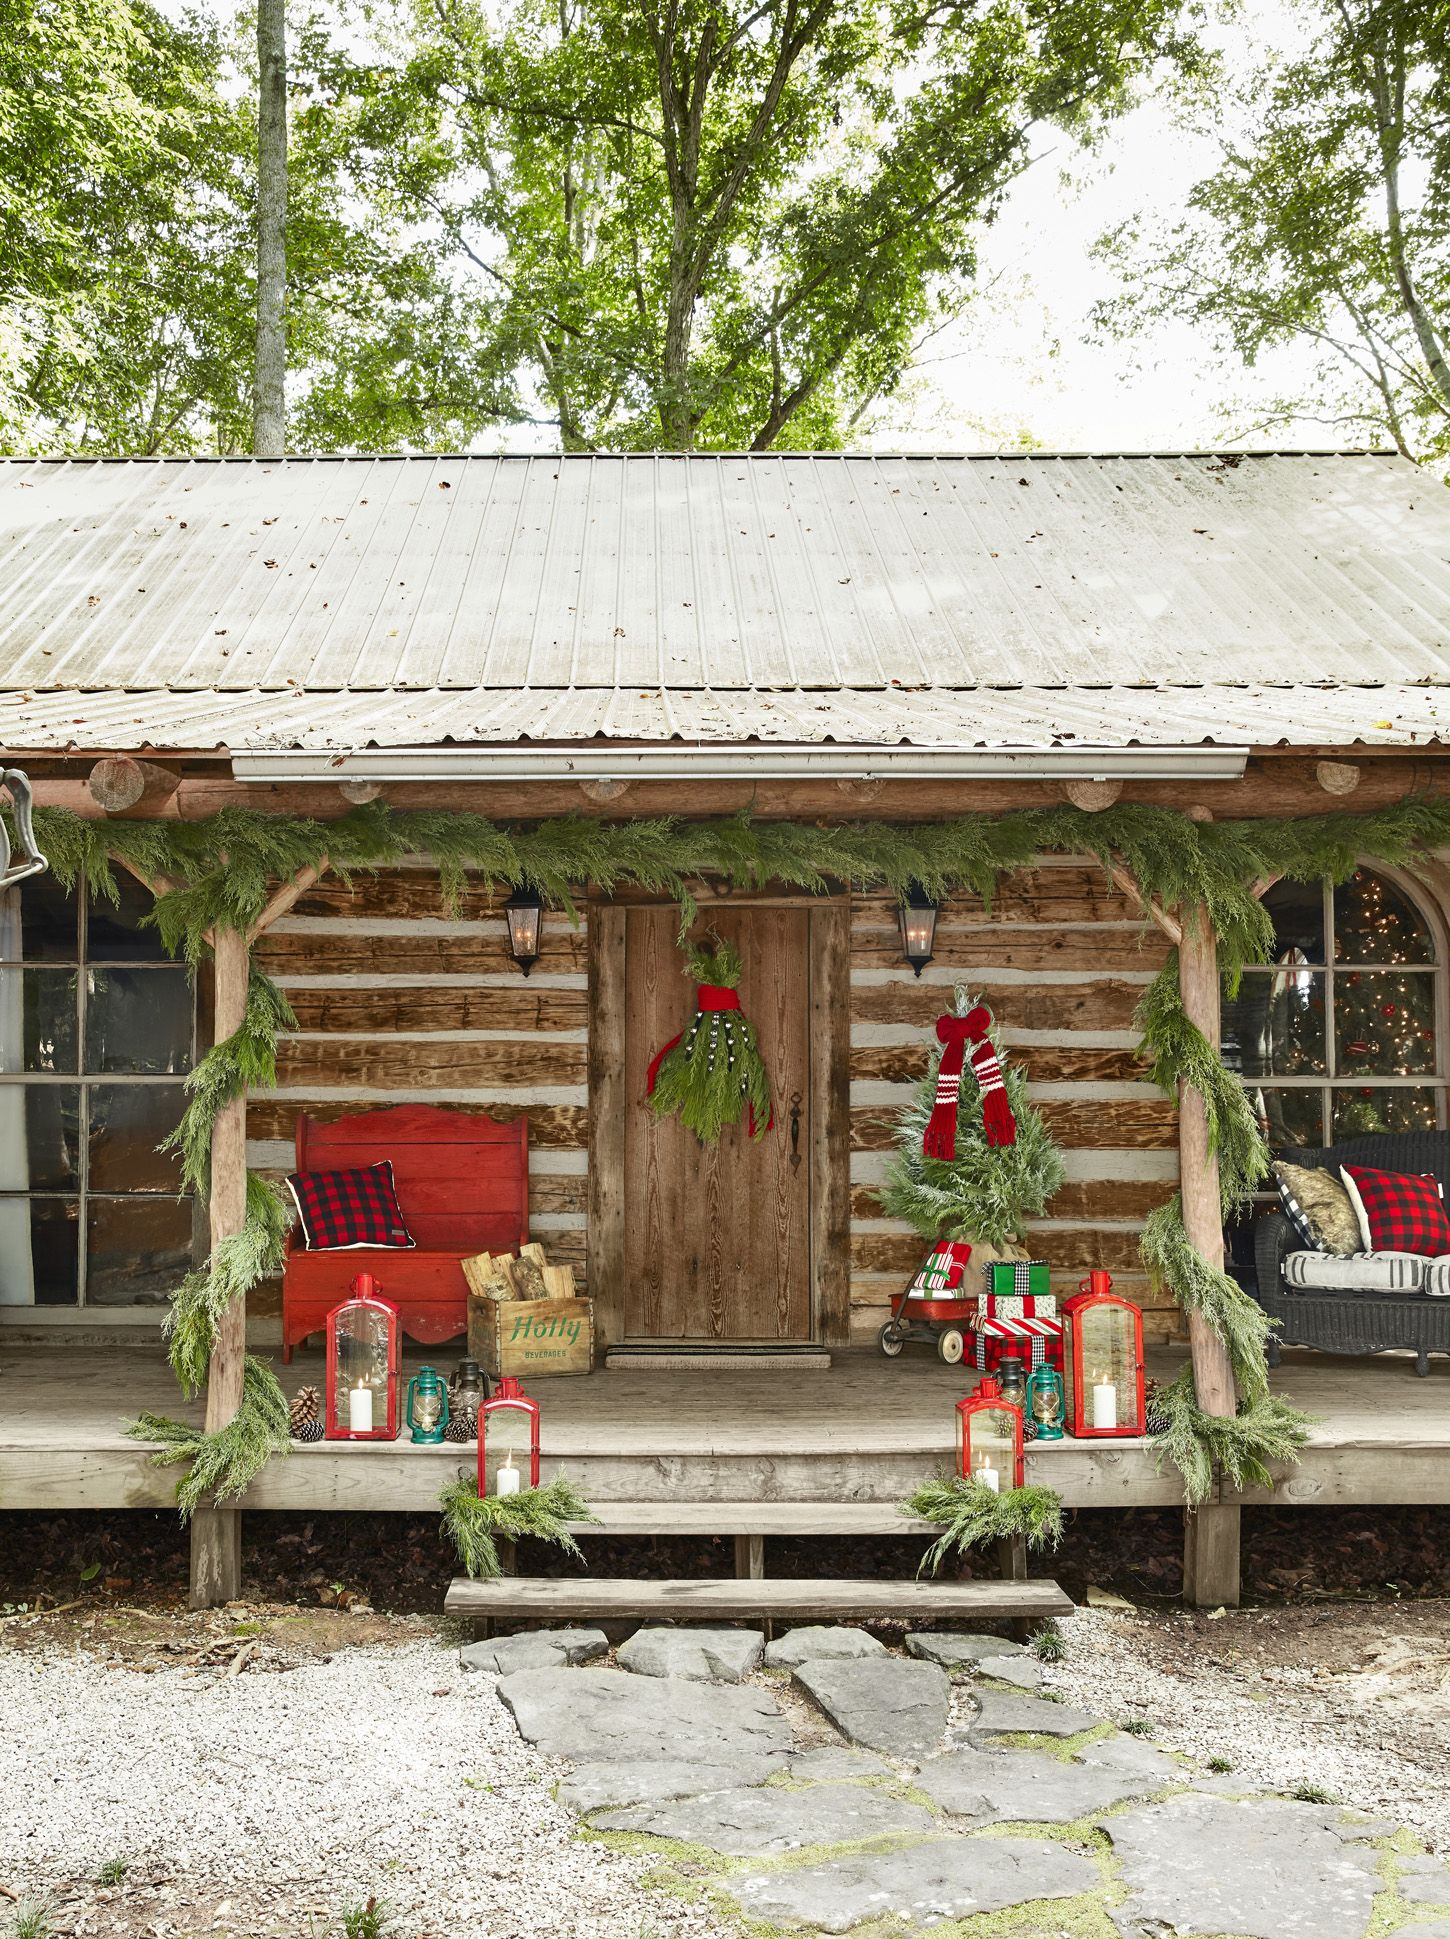 40 Outdoor Christmas Decorations Full of Holiday Cheer